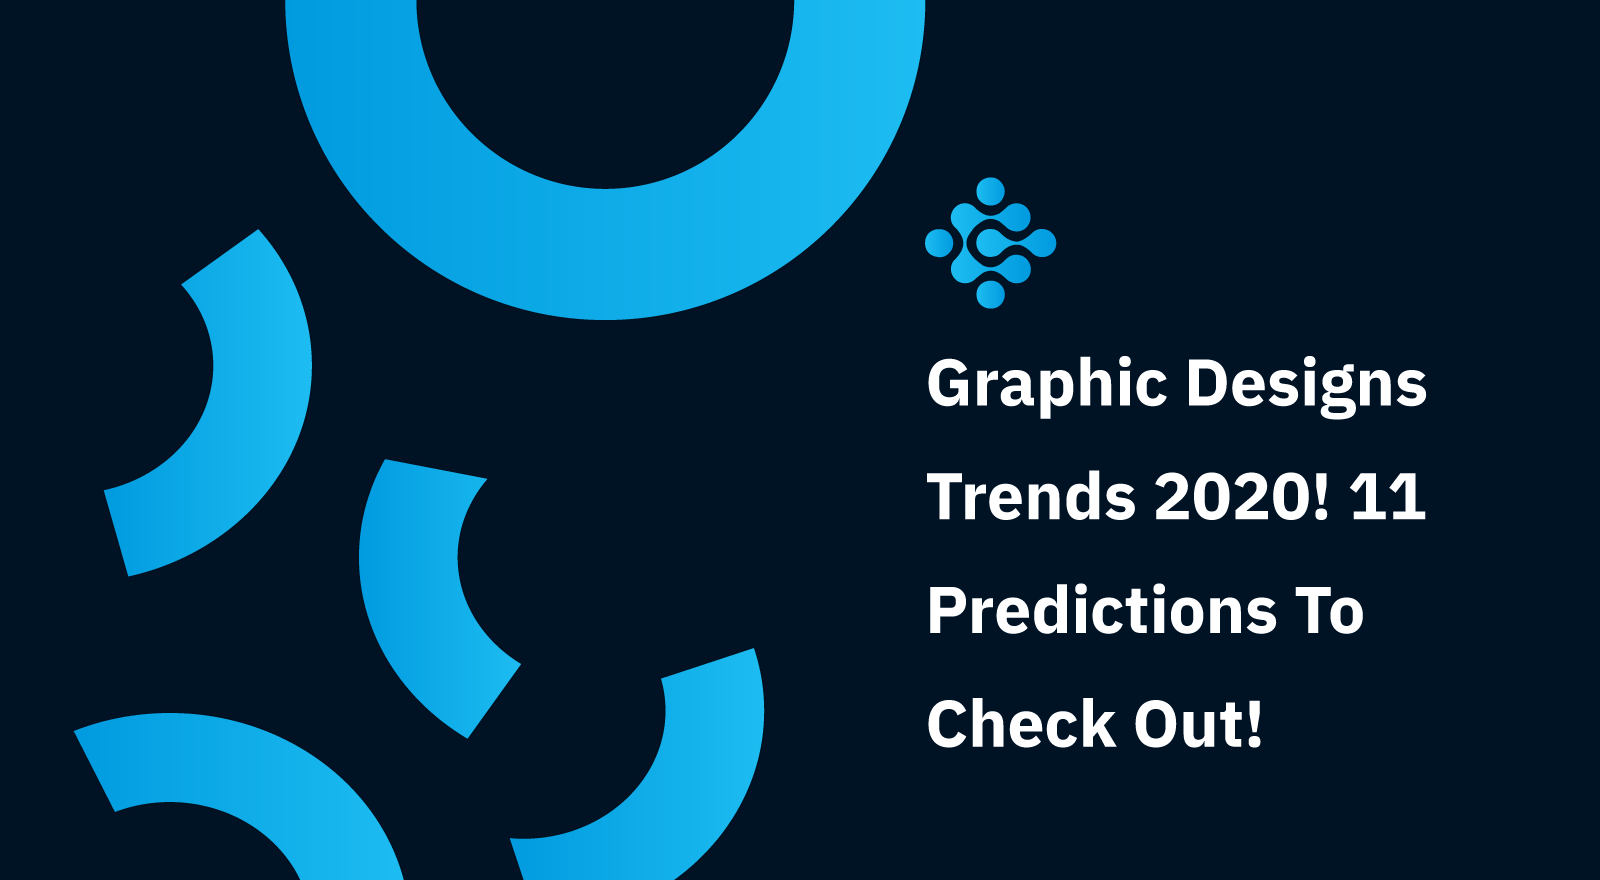 Graphic Designs Trends 2020! 11 Predictions To Check Out